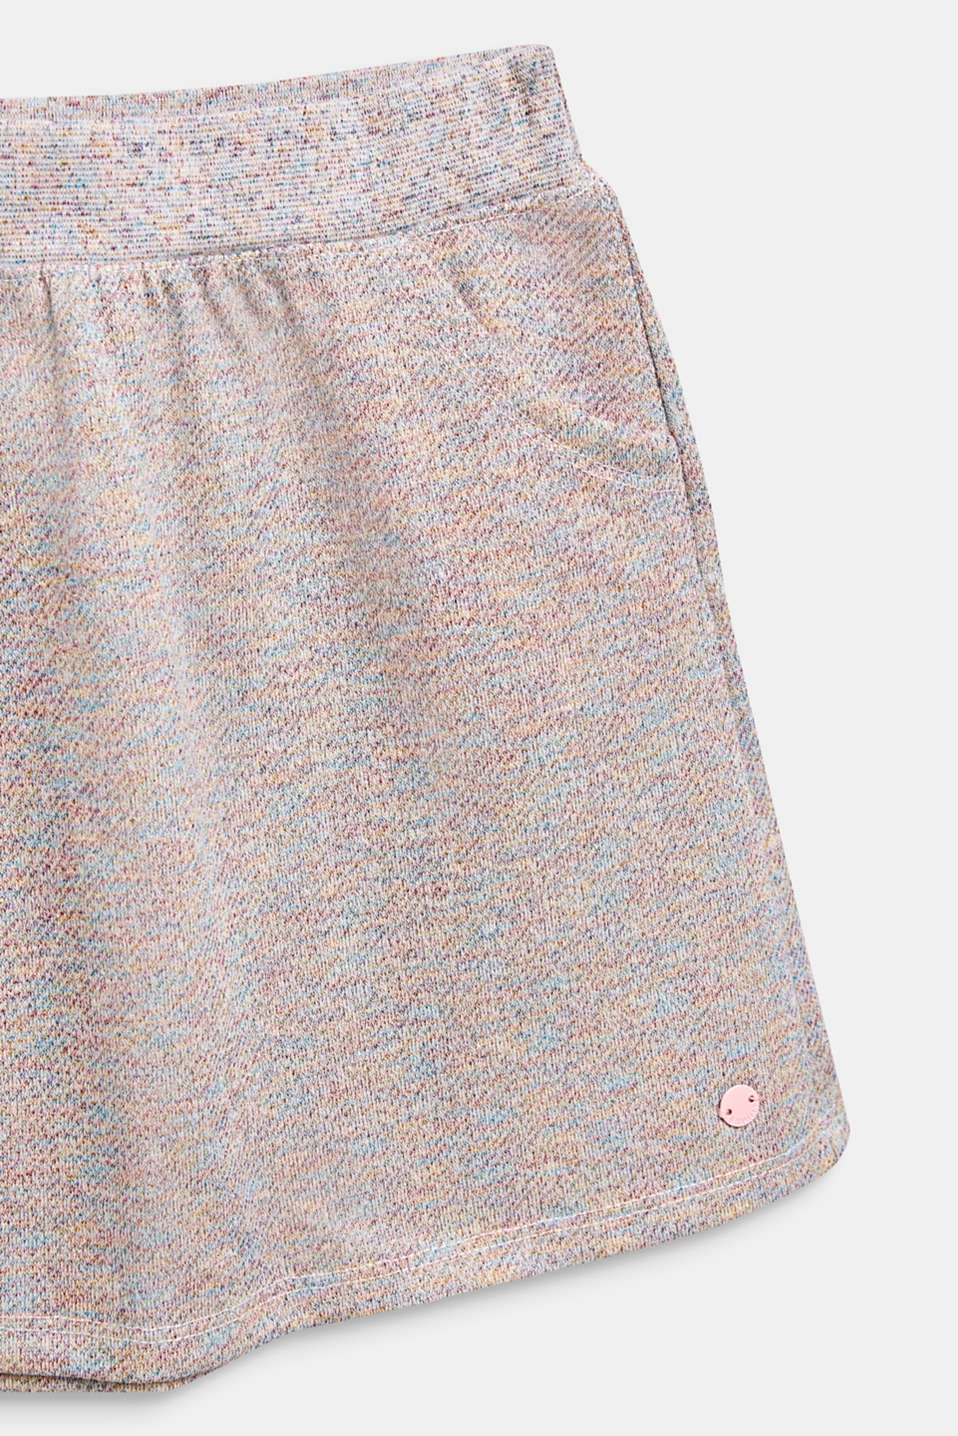 Sweatshirt fabric skirt in a colourful glitter look, MULTICOLOR, detail image number 2